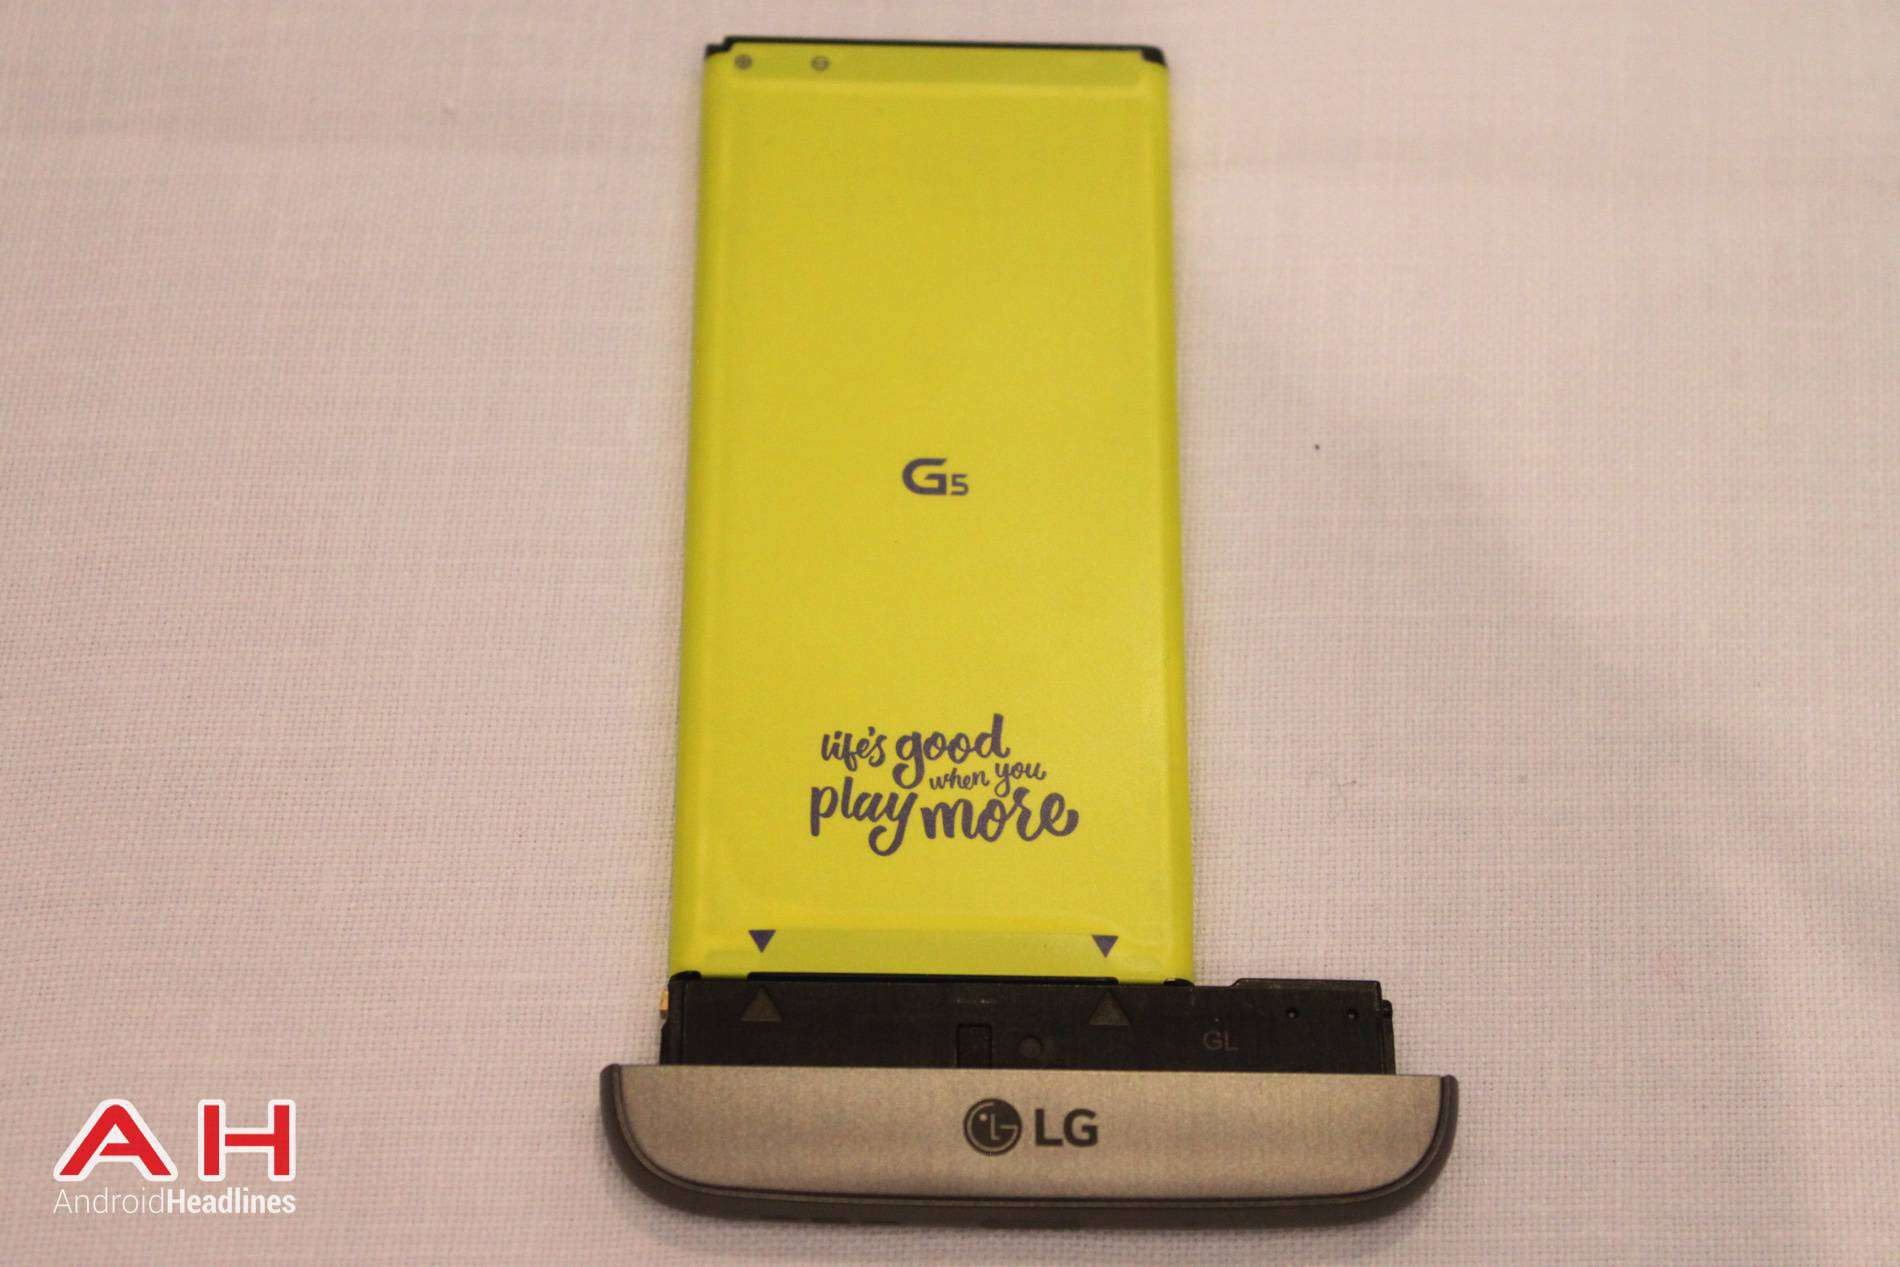 LG G5 Hands On MWC AH 13